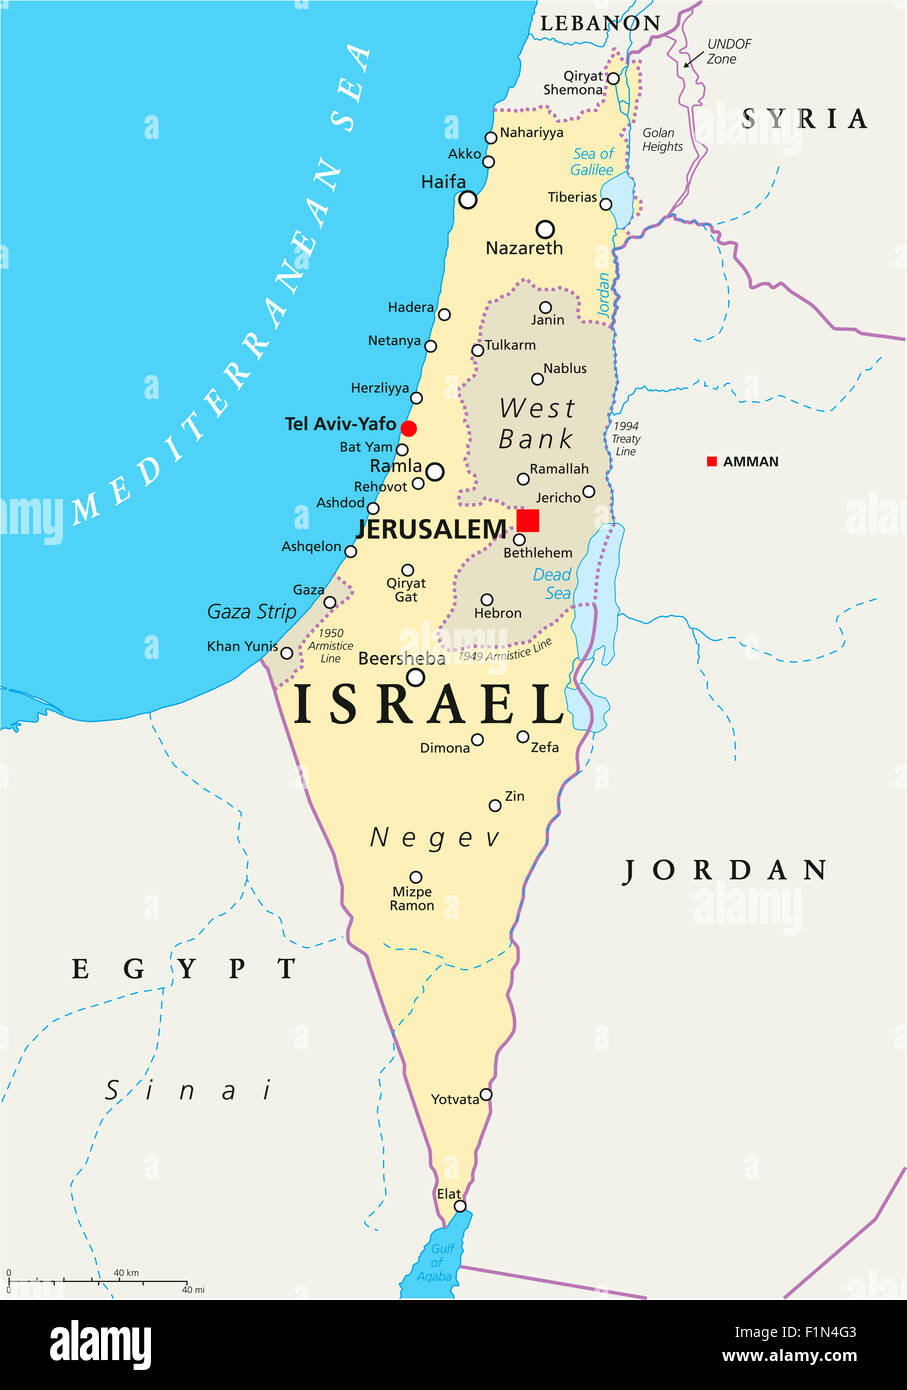 Israel political map with capital jerusalem national borders stock israel political map with capital jerusalem national borders important cities rivers and lakes english labeling and scaling gumiabroncs Choice Image